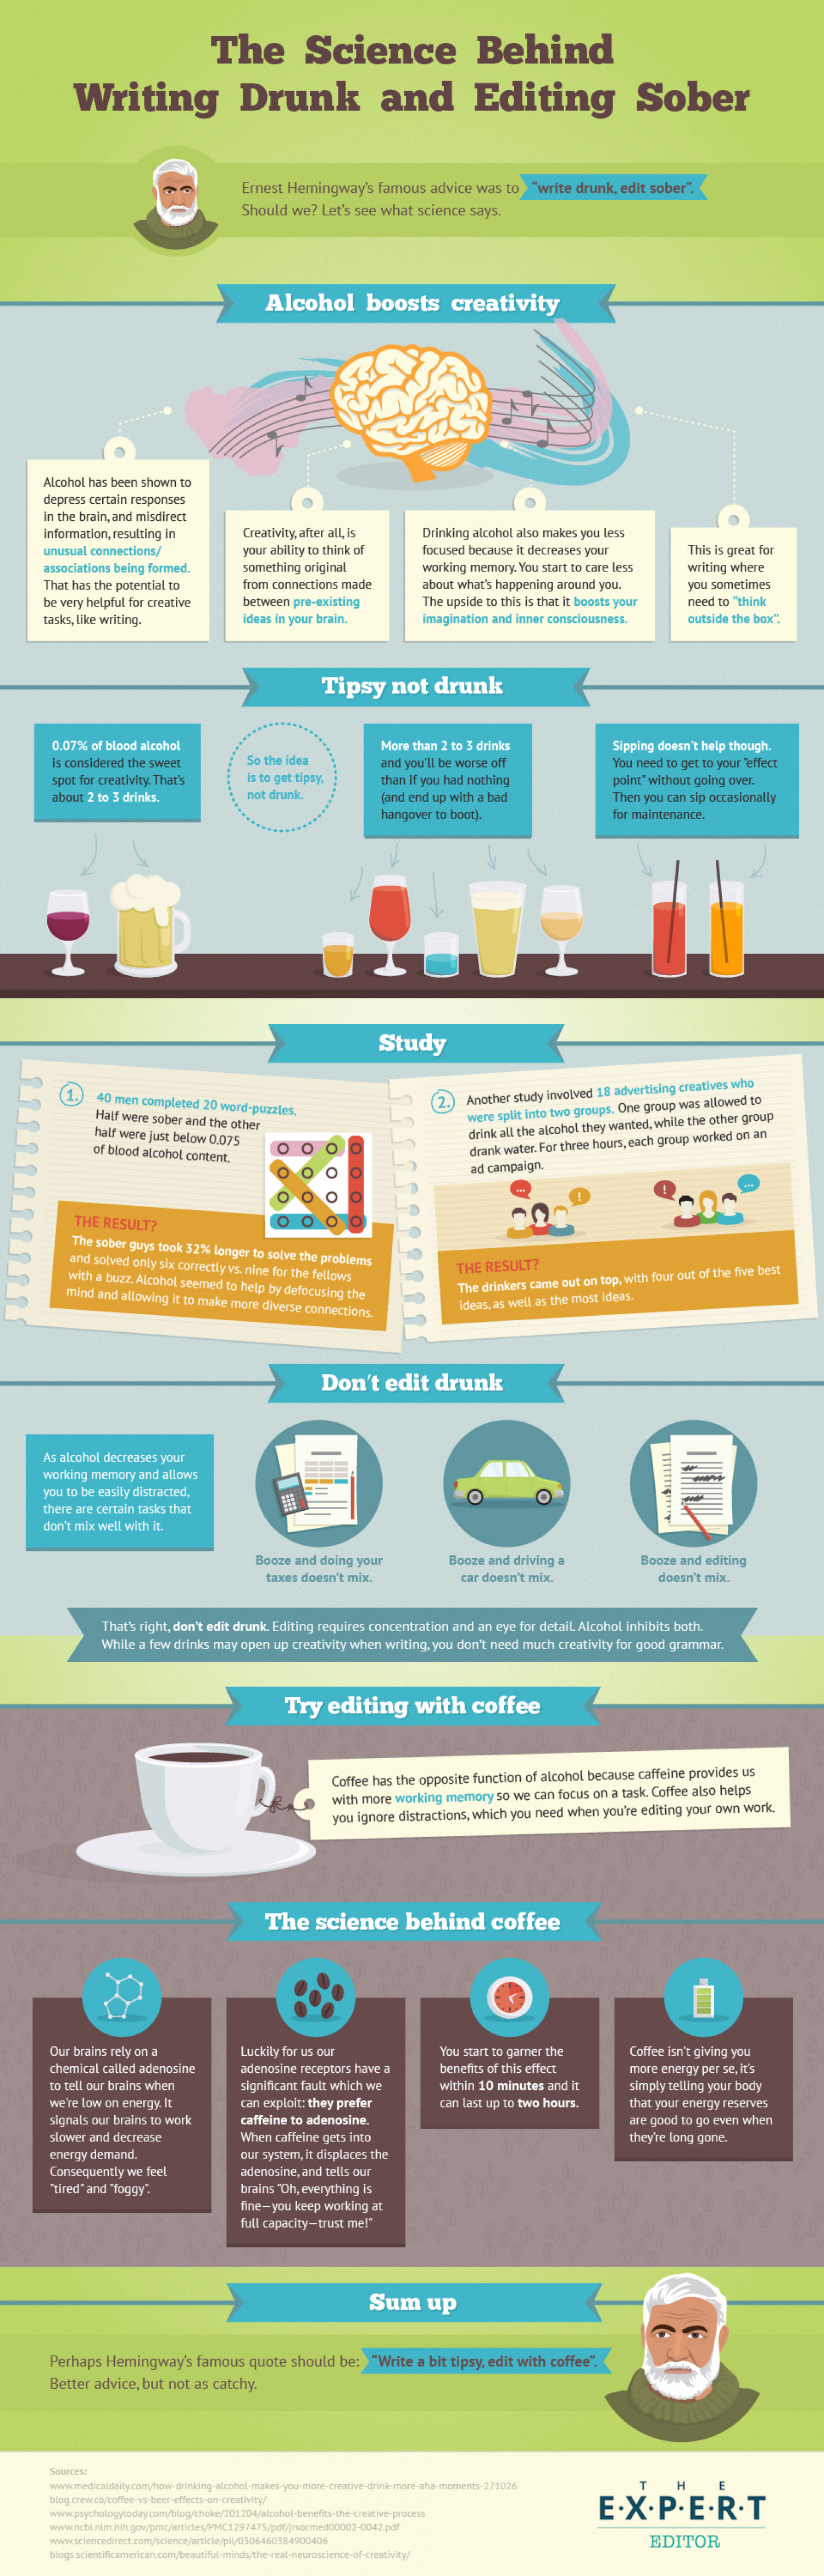 The Science Behind Writing Drunk and Editing Sober Infographic